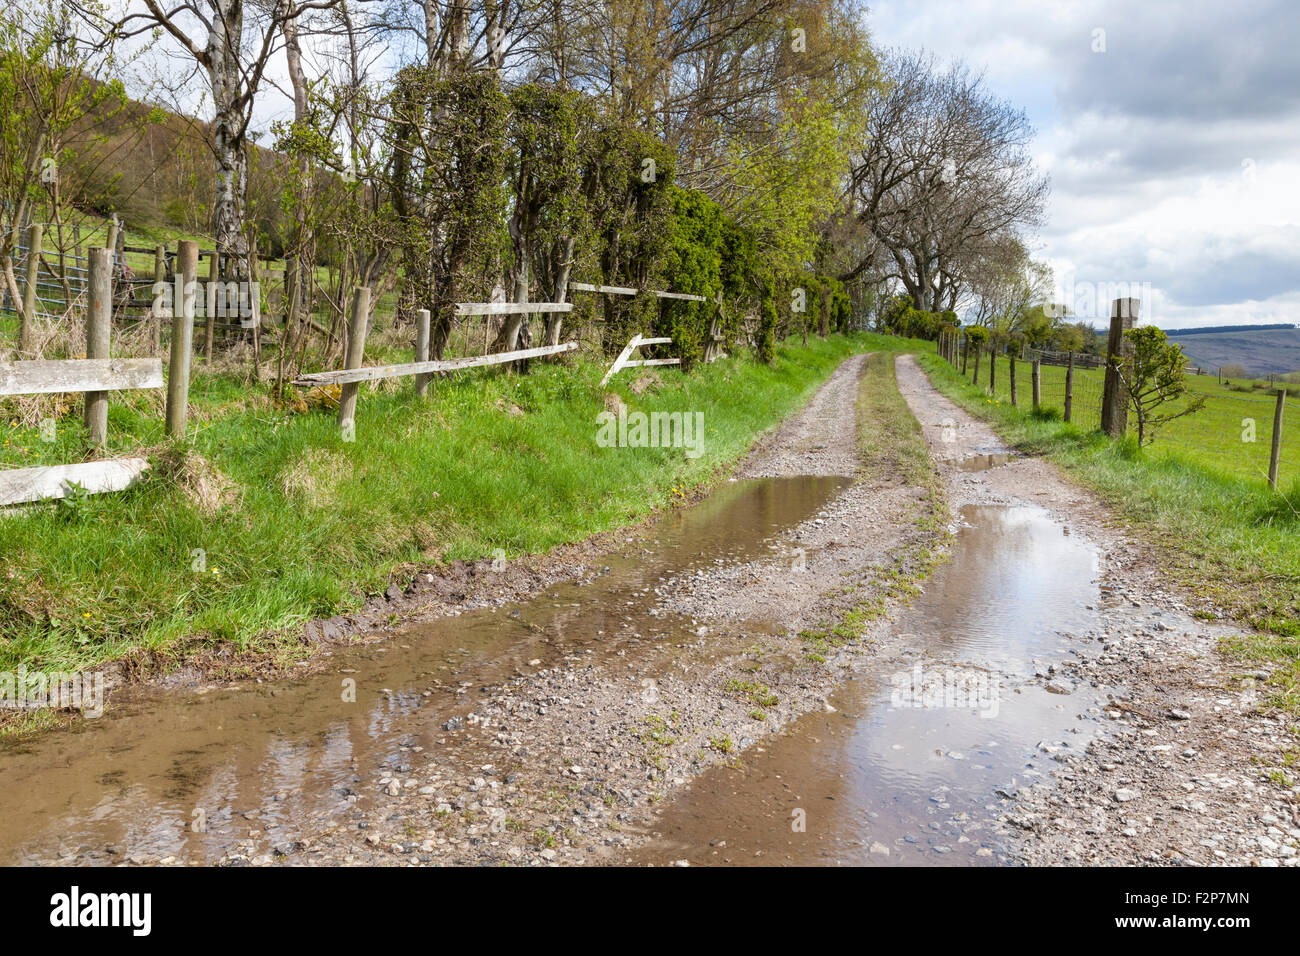 Wet weather in the countryside. Farm track or lane with puddles after rain, Derbyshire, England, UK Stock Photo